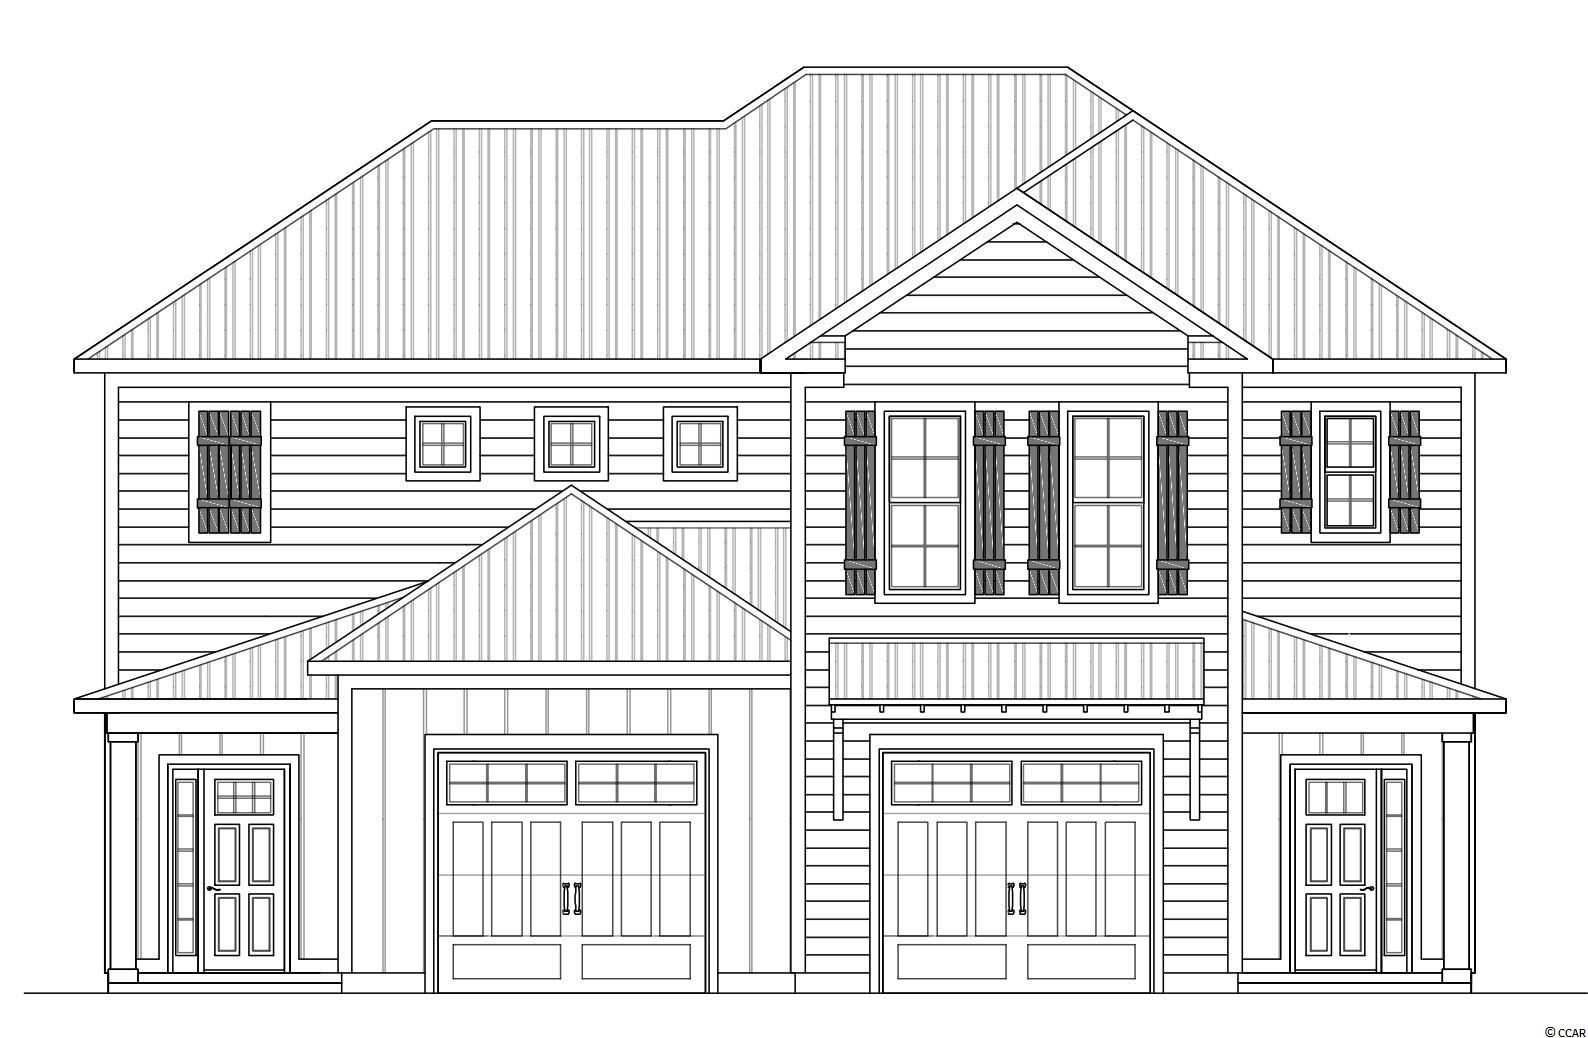 Beautiful paired residence community under the oaks in Pawleys Island.  This 10 resident community tucked away is the perfect place to call home, or to have as the vacation get away.  Hardie Plank siding, LVP flooring throughout, granite countertops in the kitchen, custom cabinets, upgrades galore.  Call today!!  Pictures are of a similar model and do not represent the exact home.